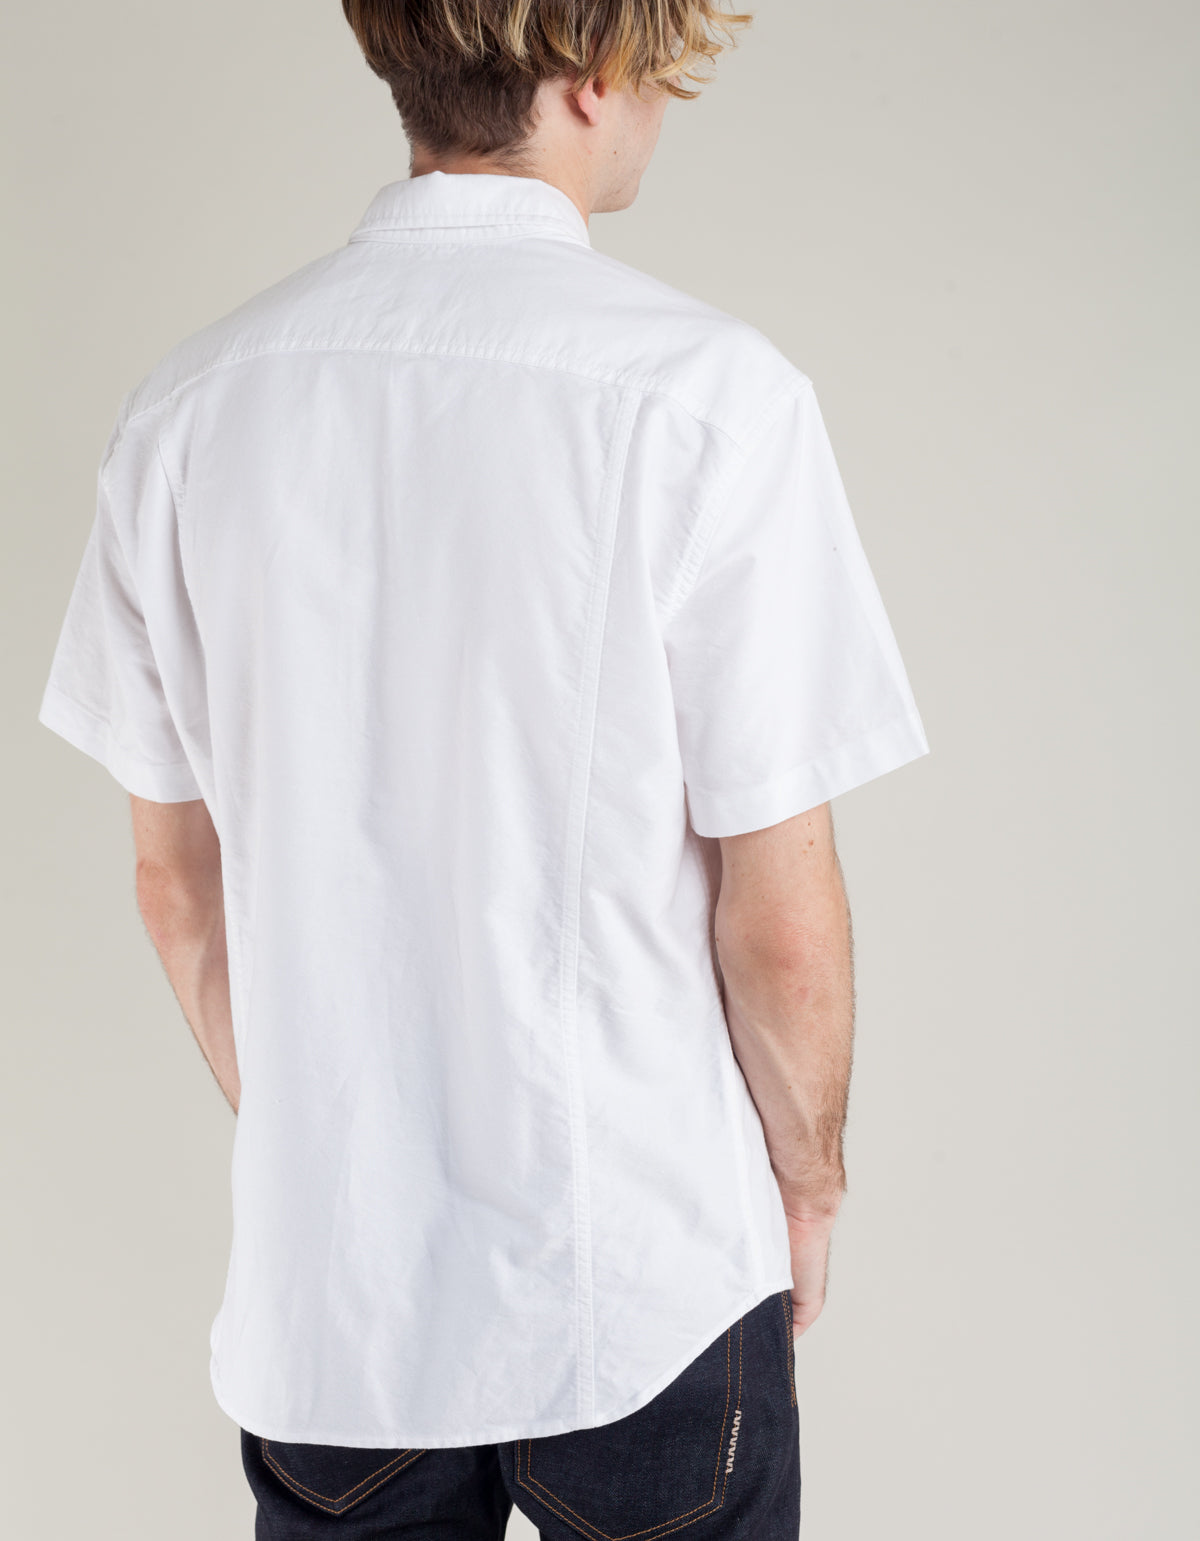 Corridor Classic Short Sleeve Oxford White